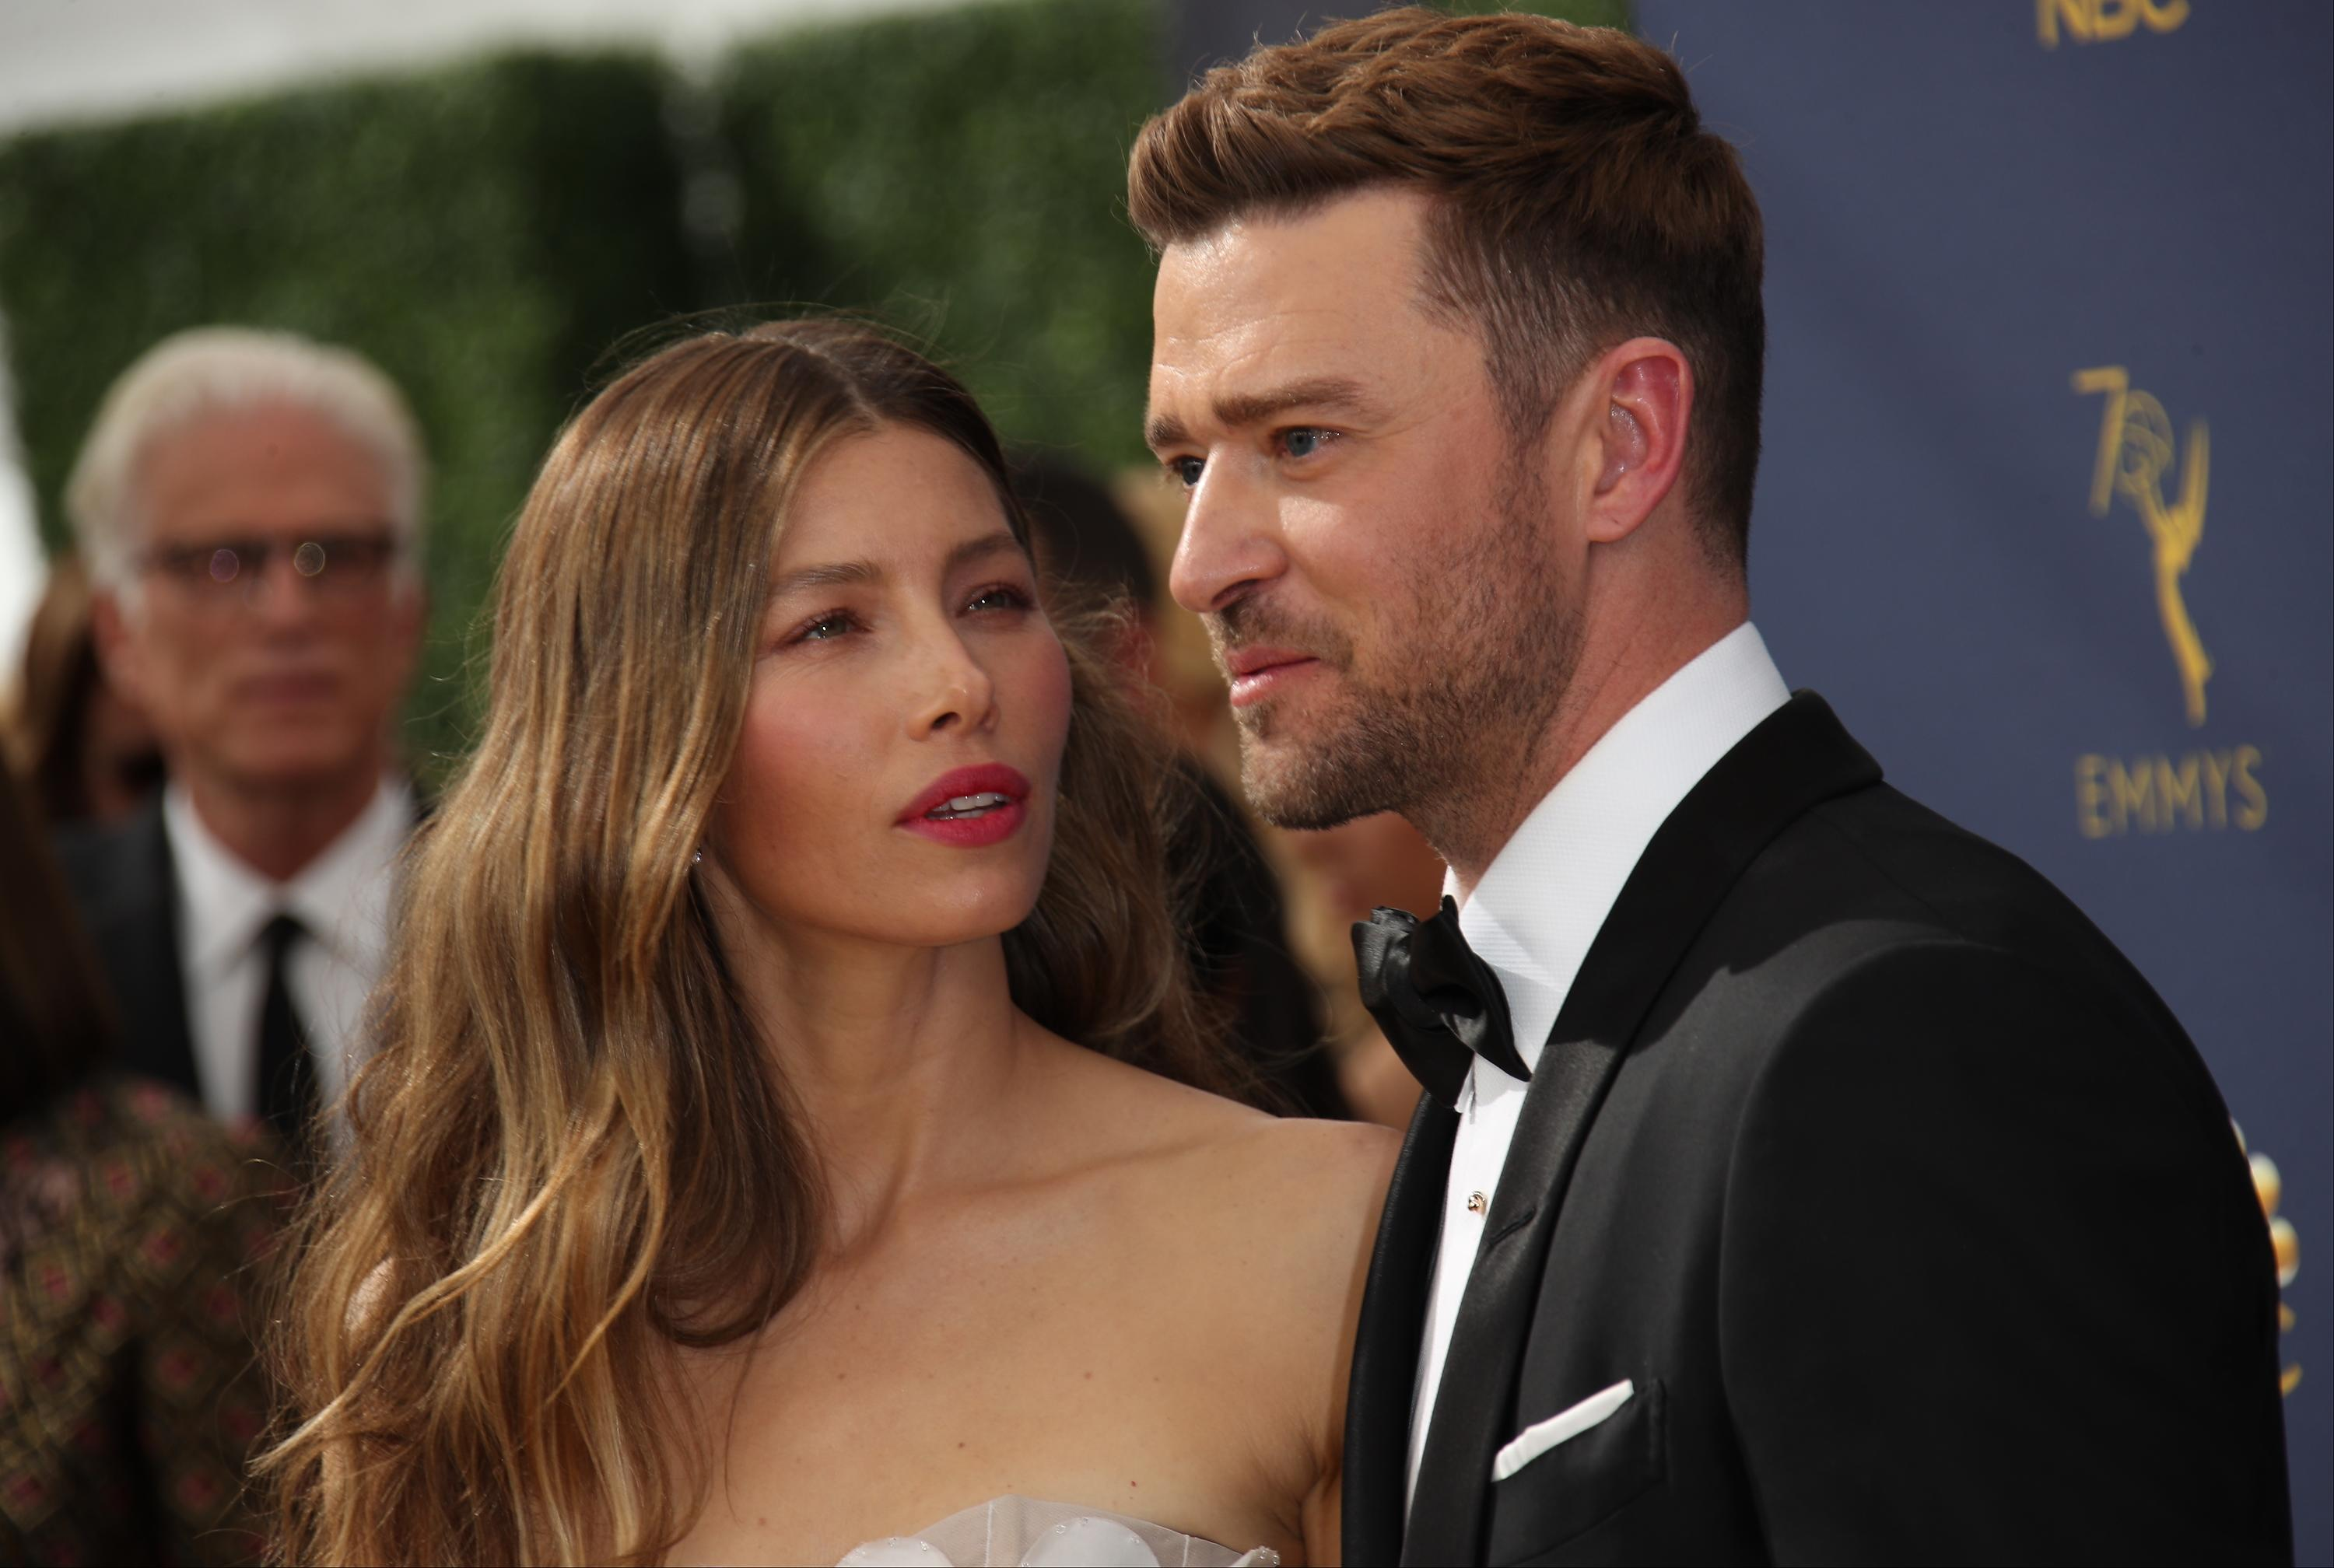 What Justin Timberlake said about falling for Jessica Biel — before PDA pics with co-star emerged